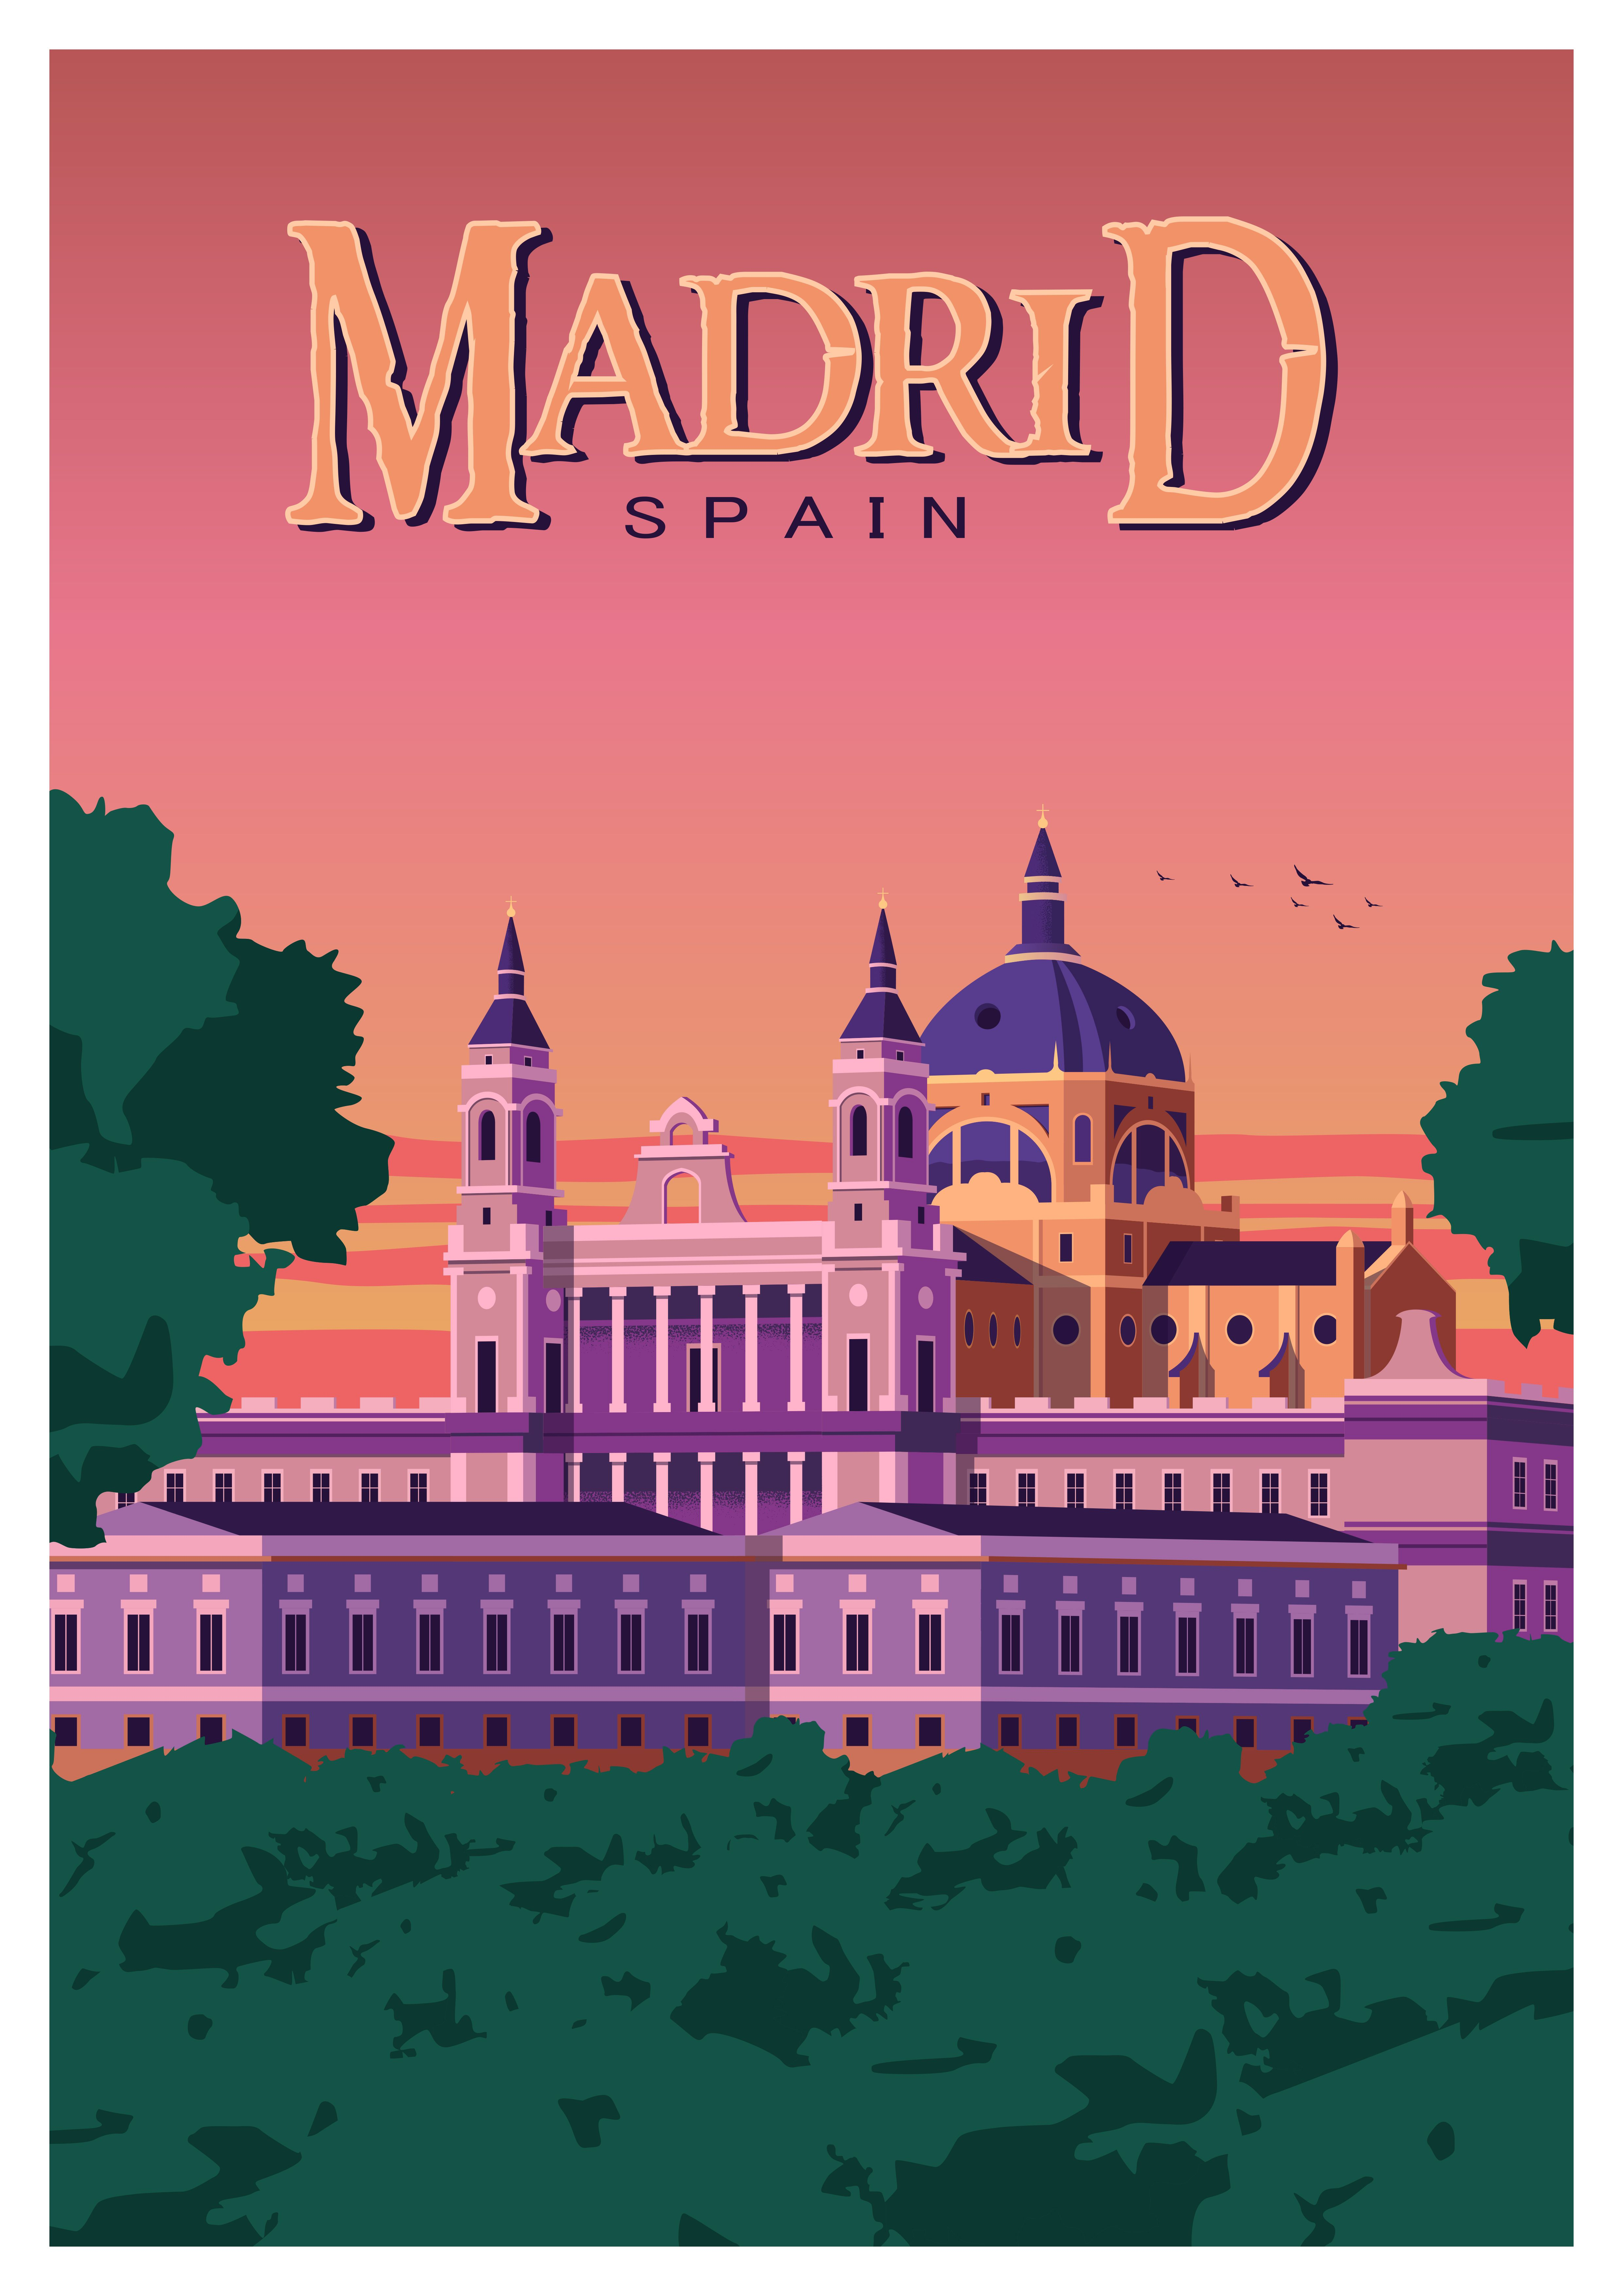 Madrid Vintage Travel Poster Retro Wall Art Print Spain Decor Retro Travel Poster Retro Poster Travel Posters